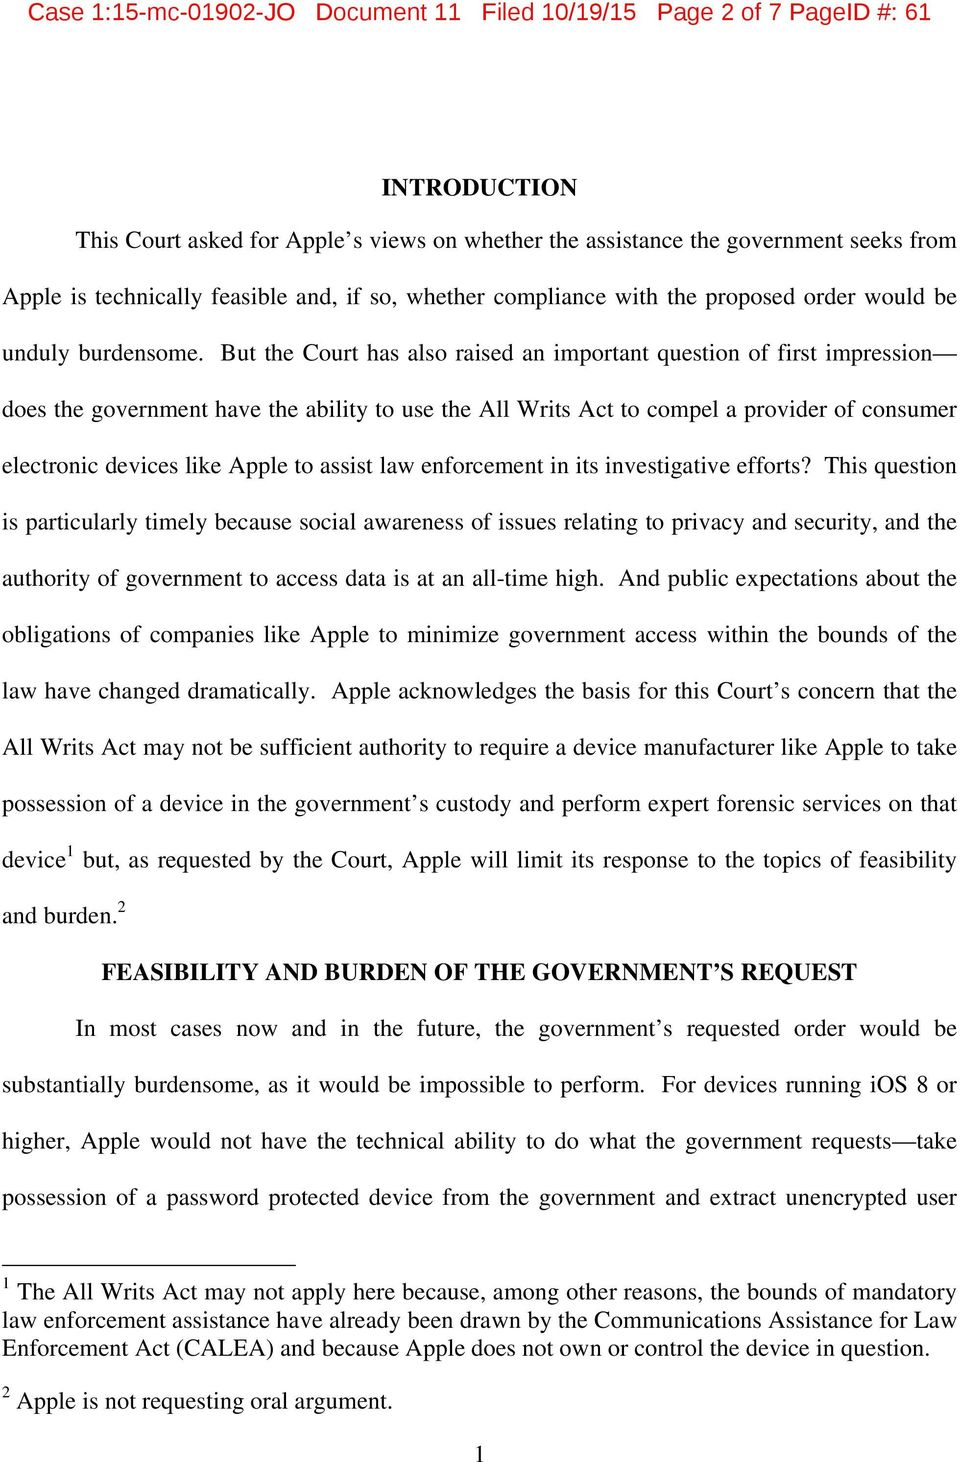 But the Court has also raised an important question of first impression does the government have the ability to use the All Writs Act to compel a provider of consumer electronic devices like Apple to